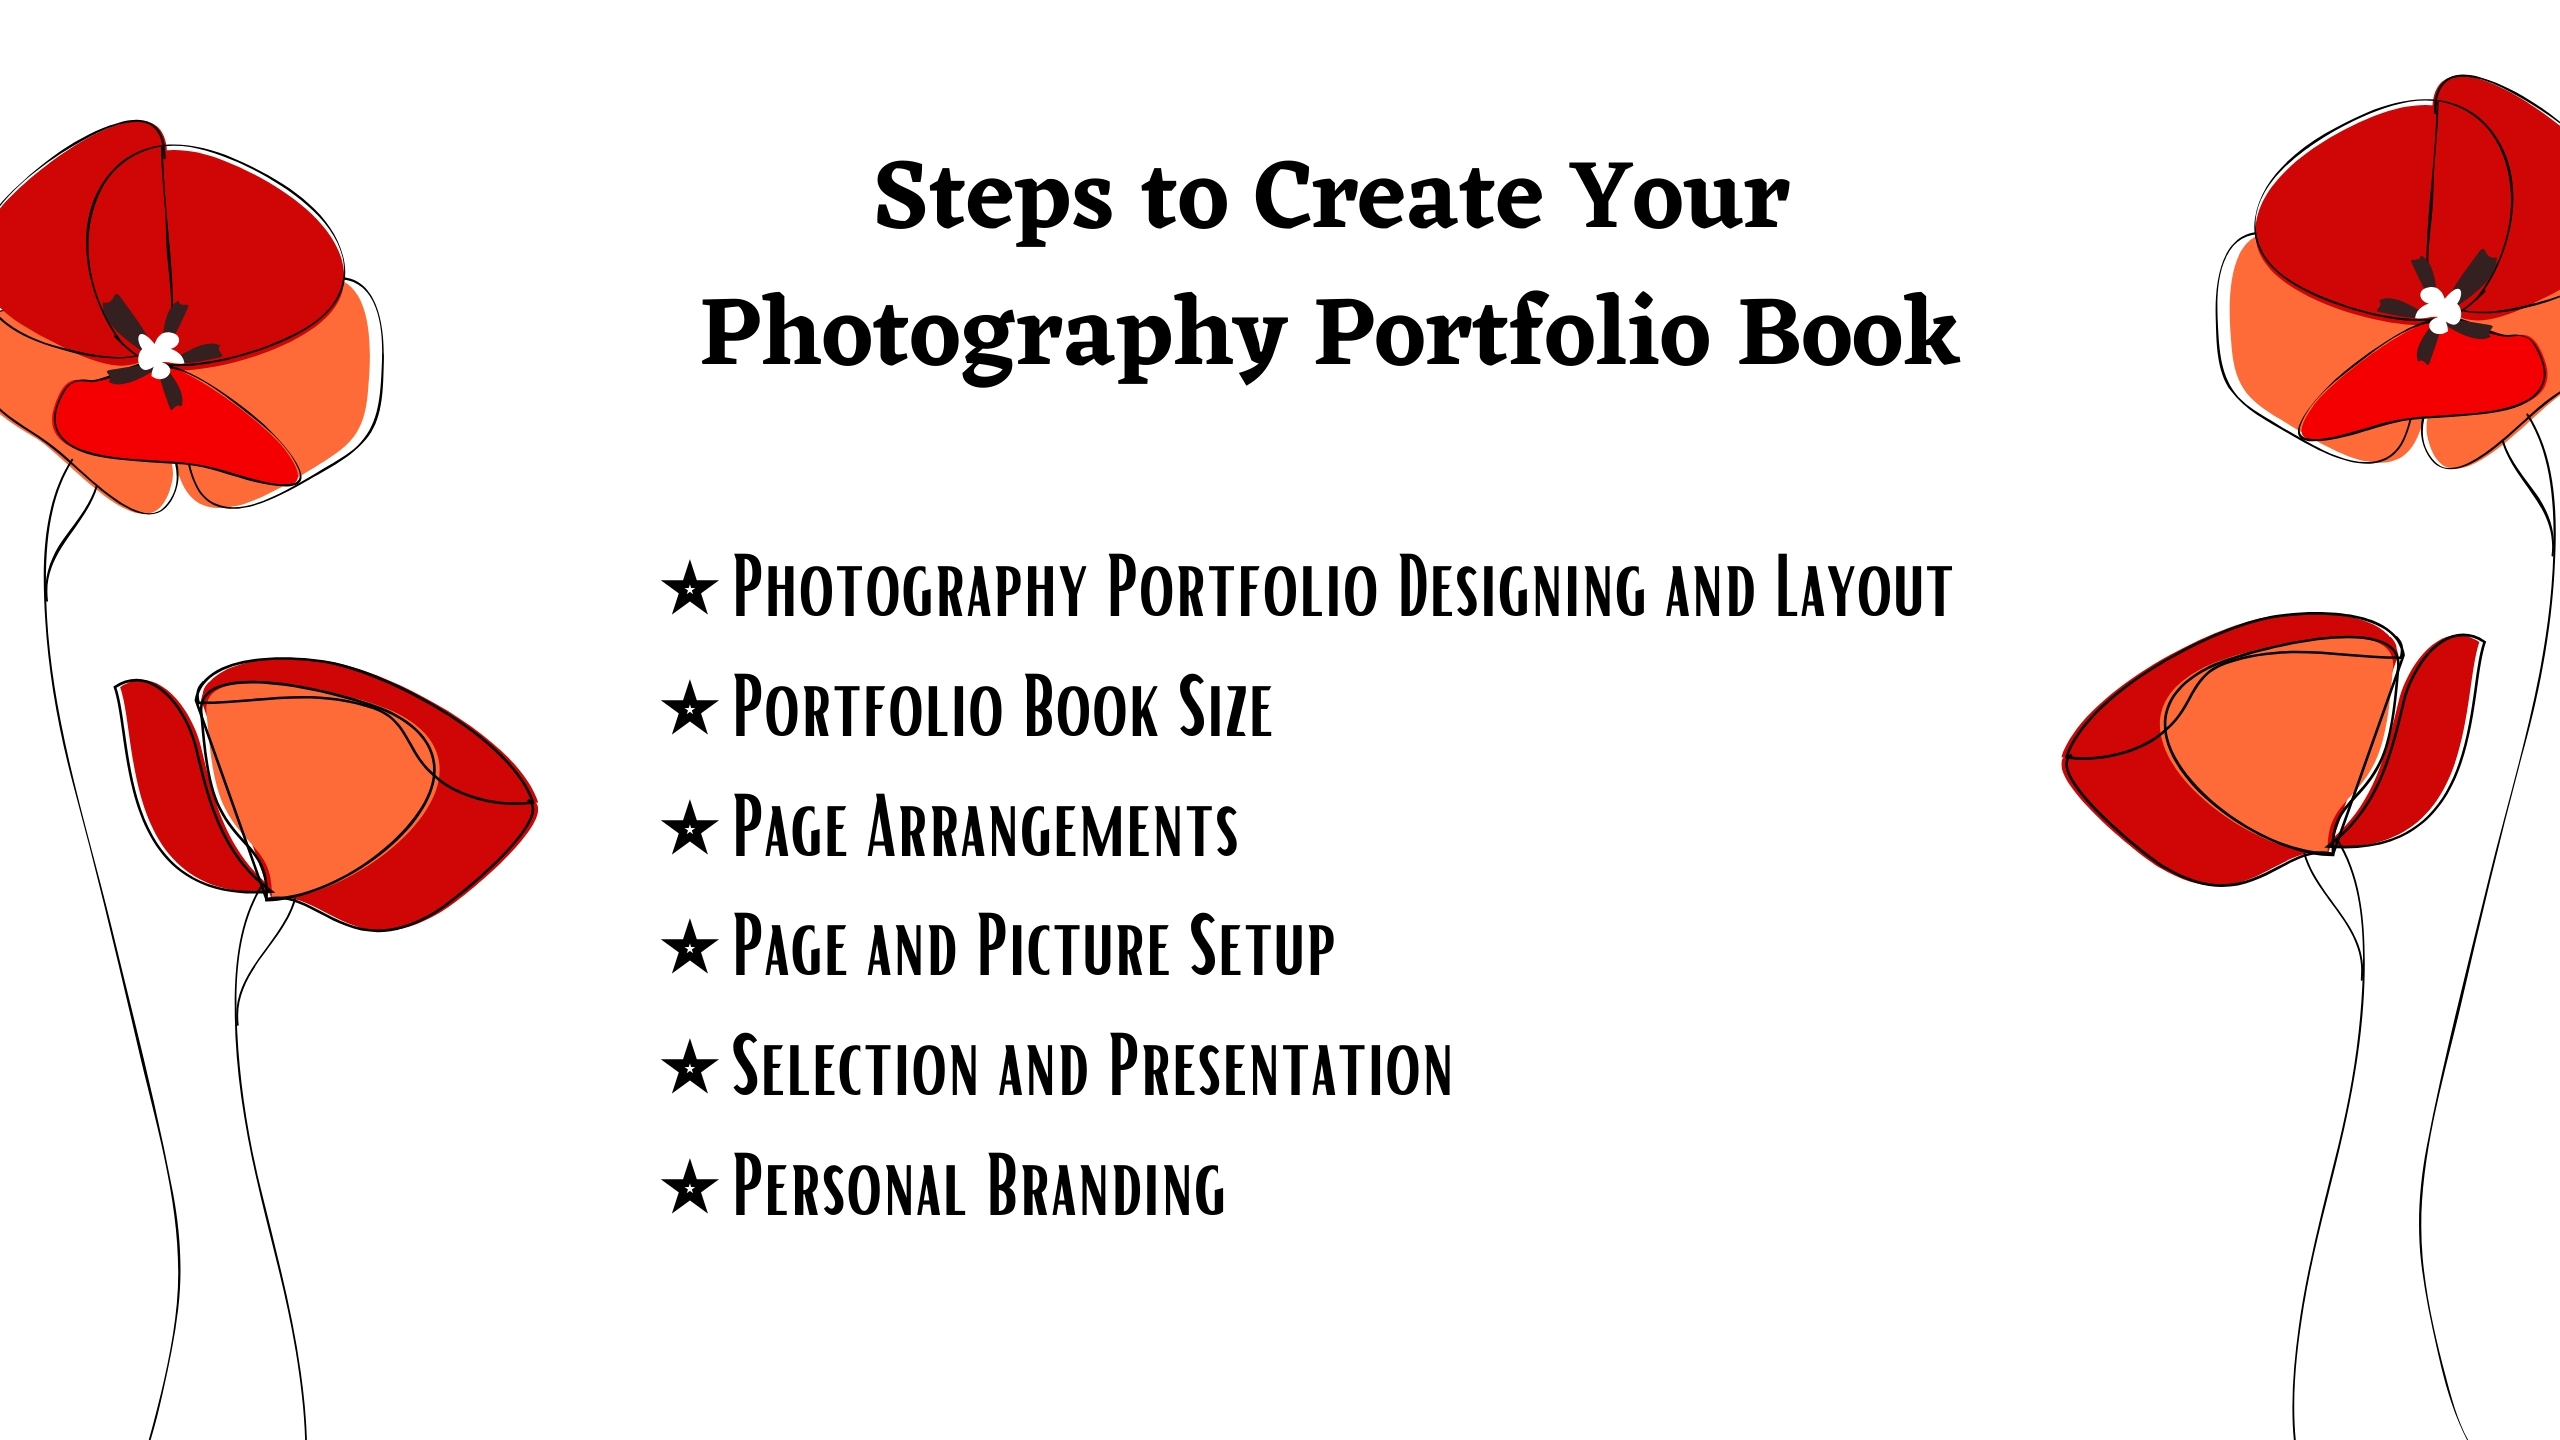 Steps to Create a Photography Portfolio Book